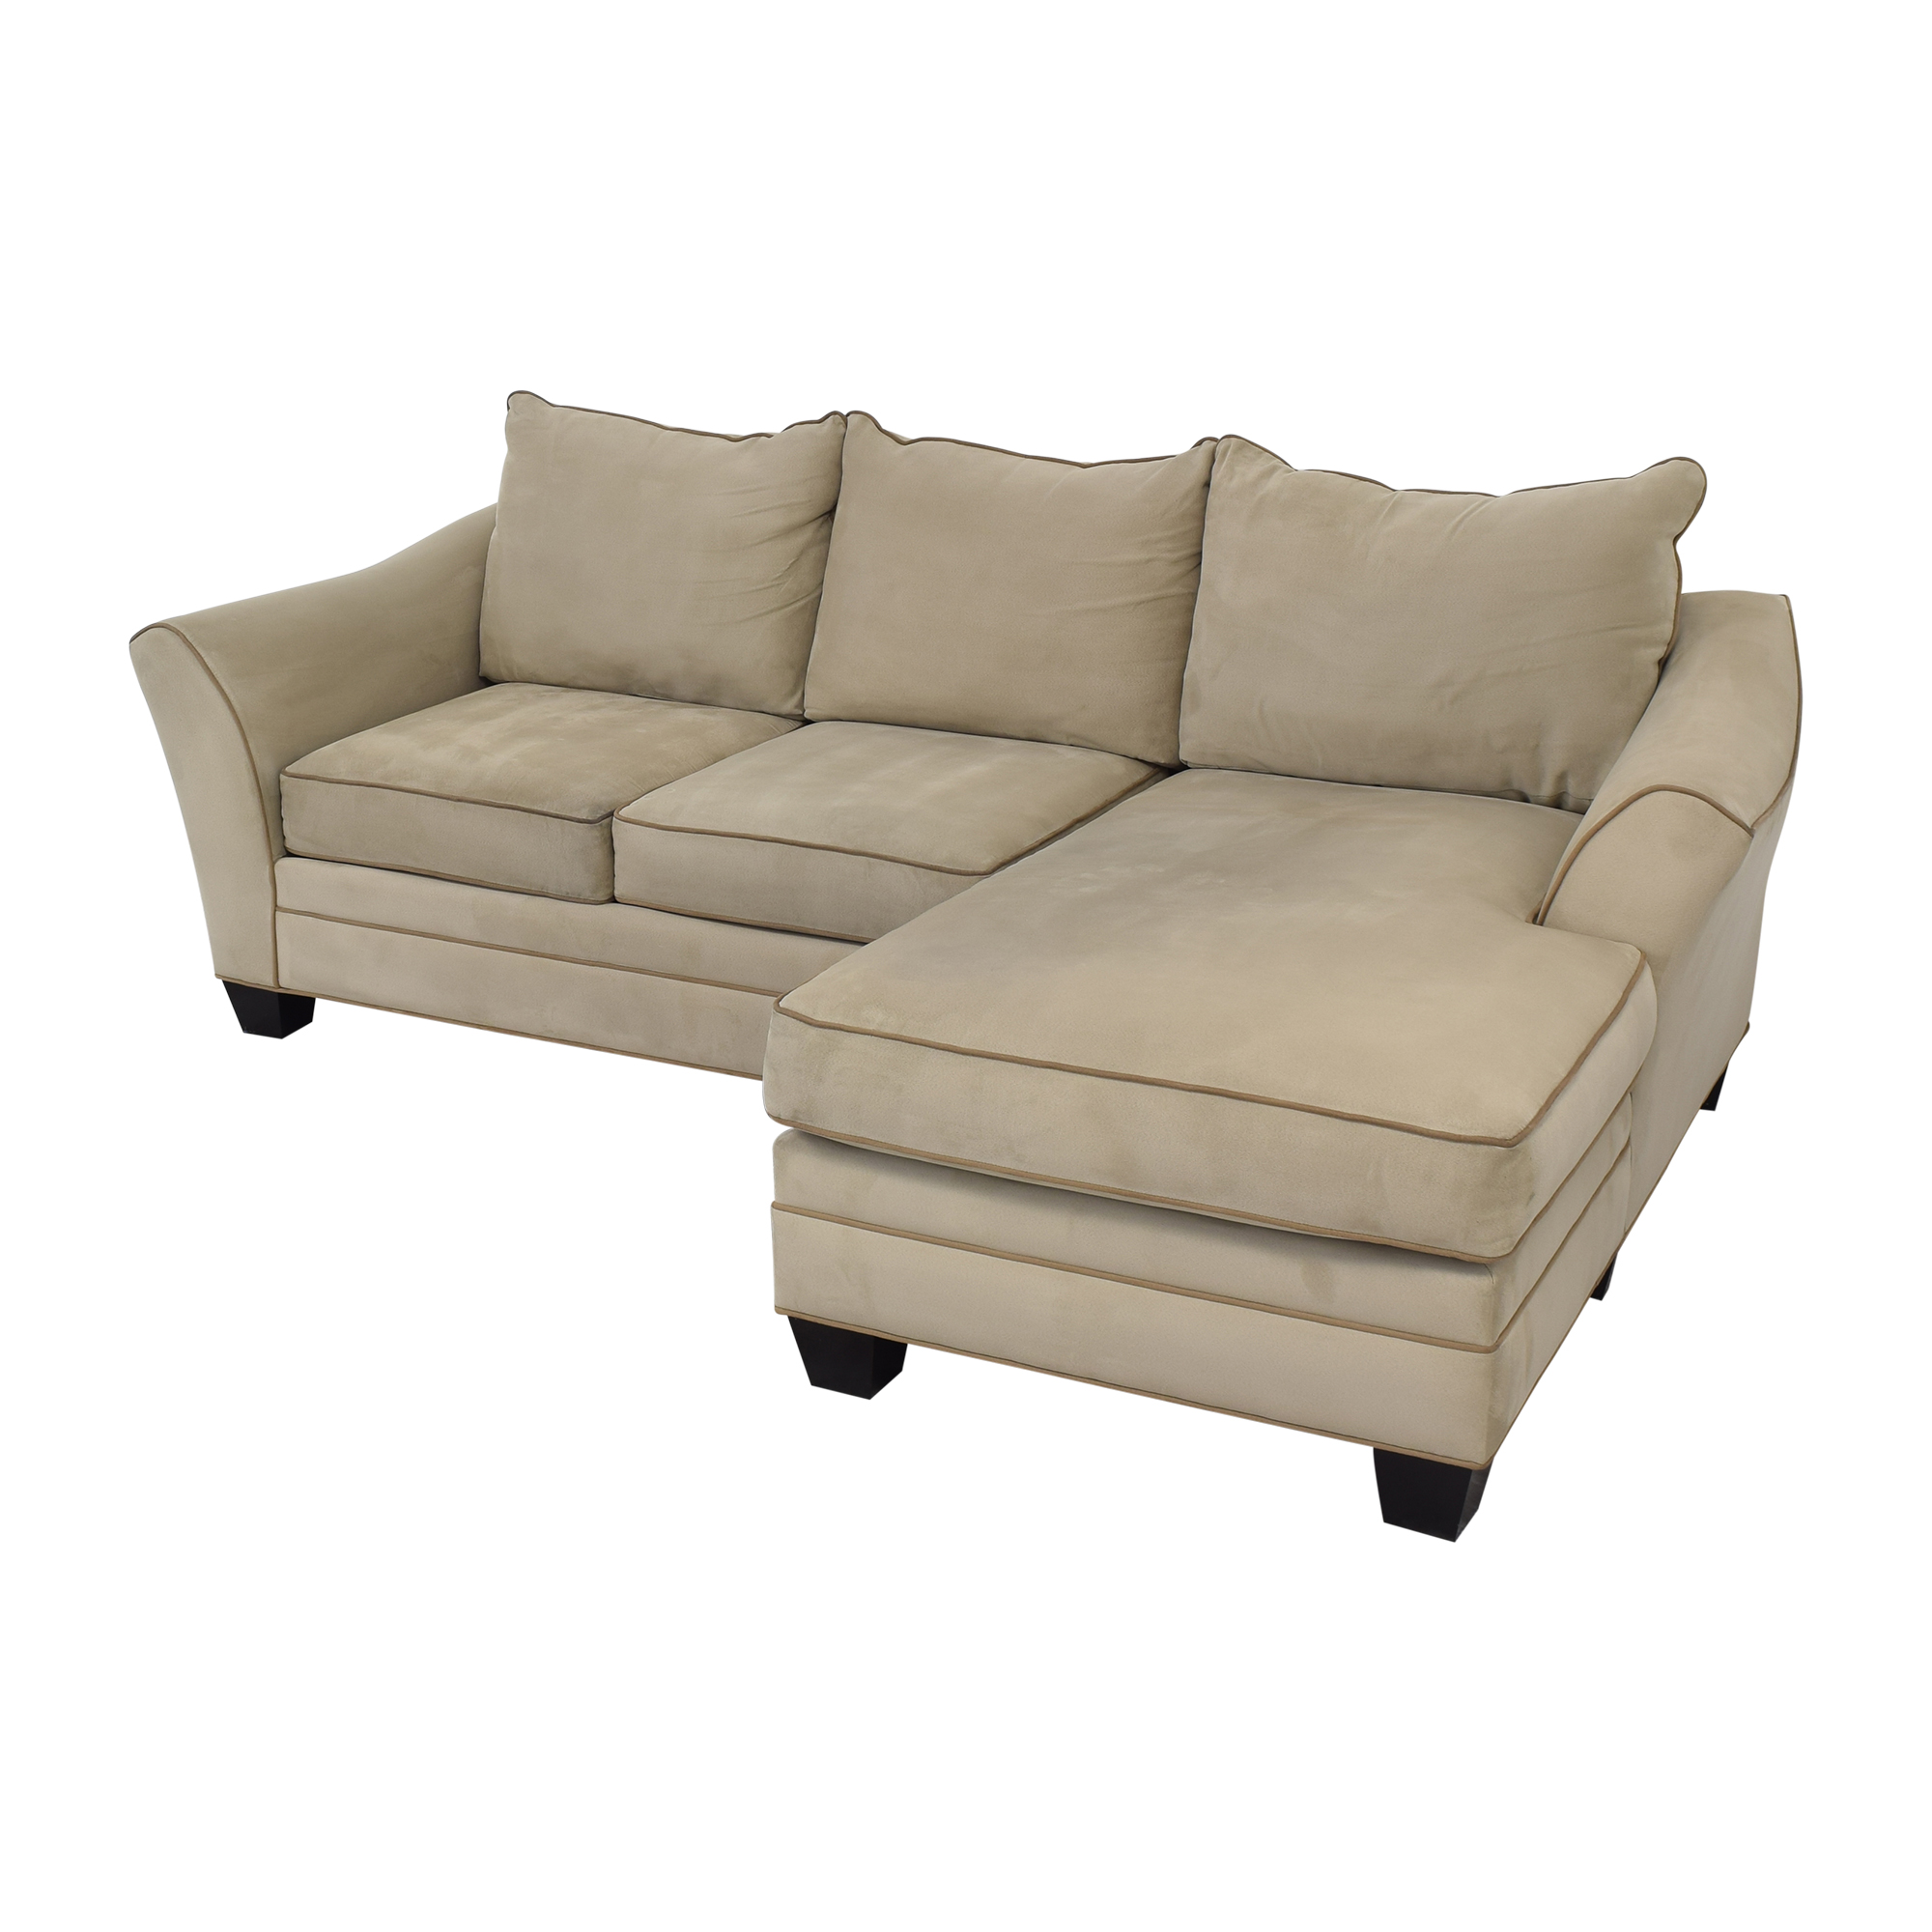 Raymour & Flanigan Raymour & Flanigan Chaise Sectional Sofa pa